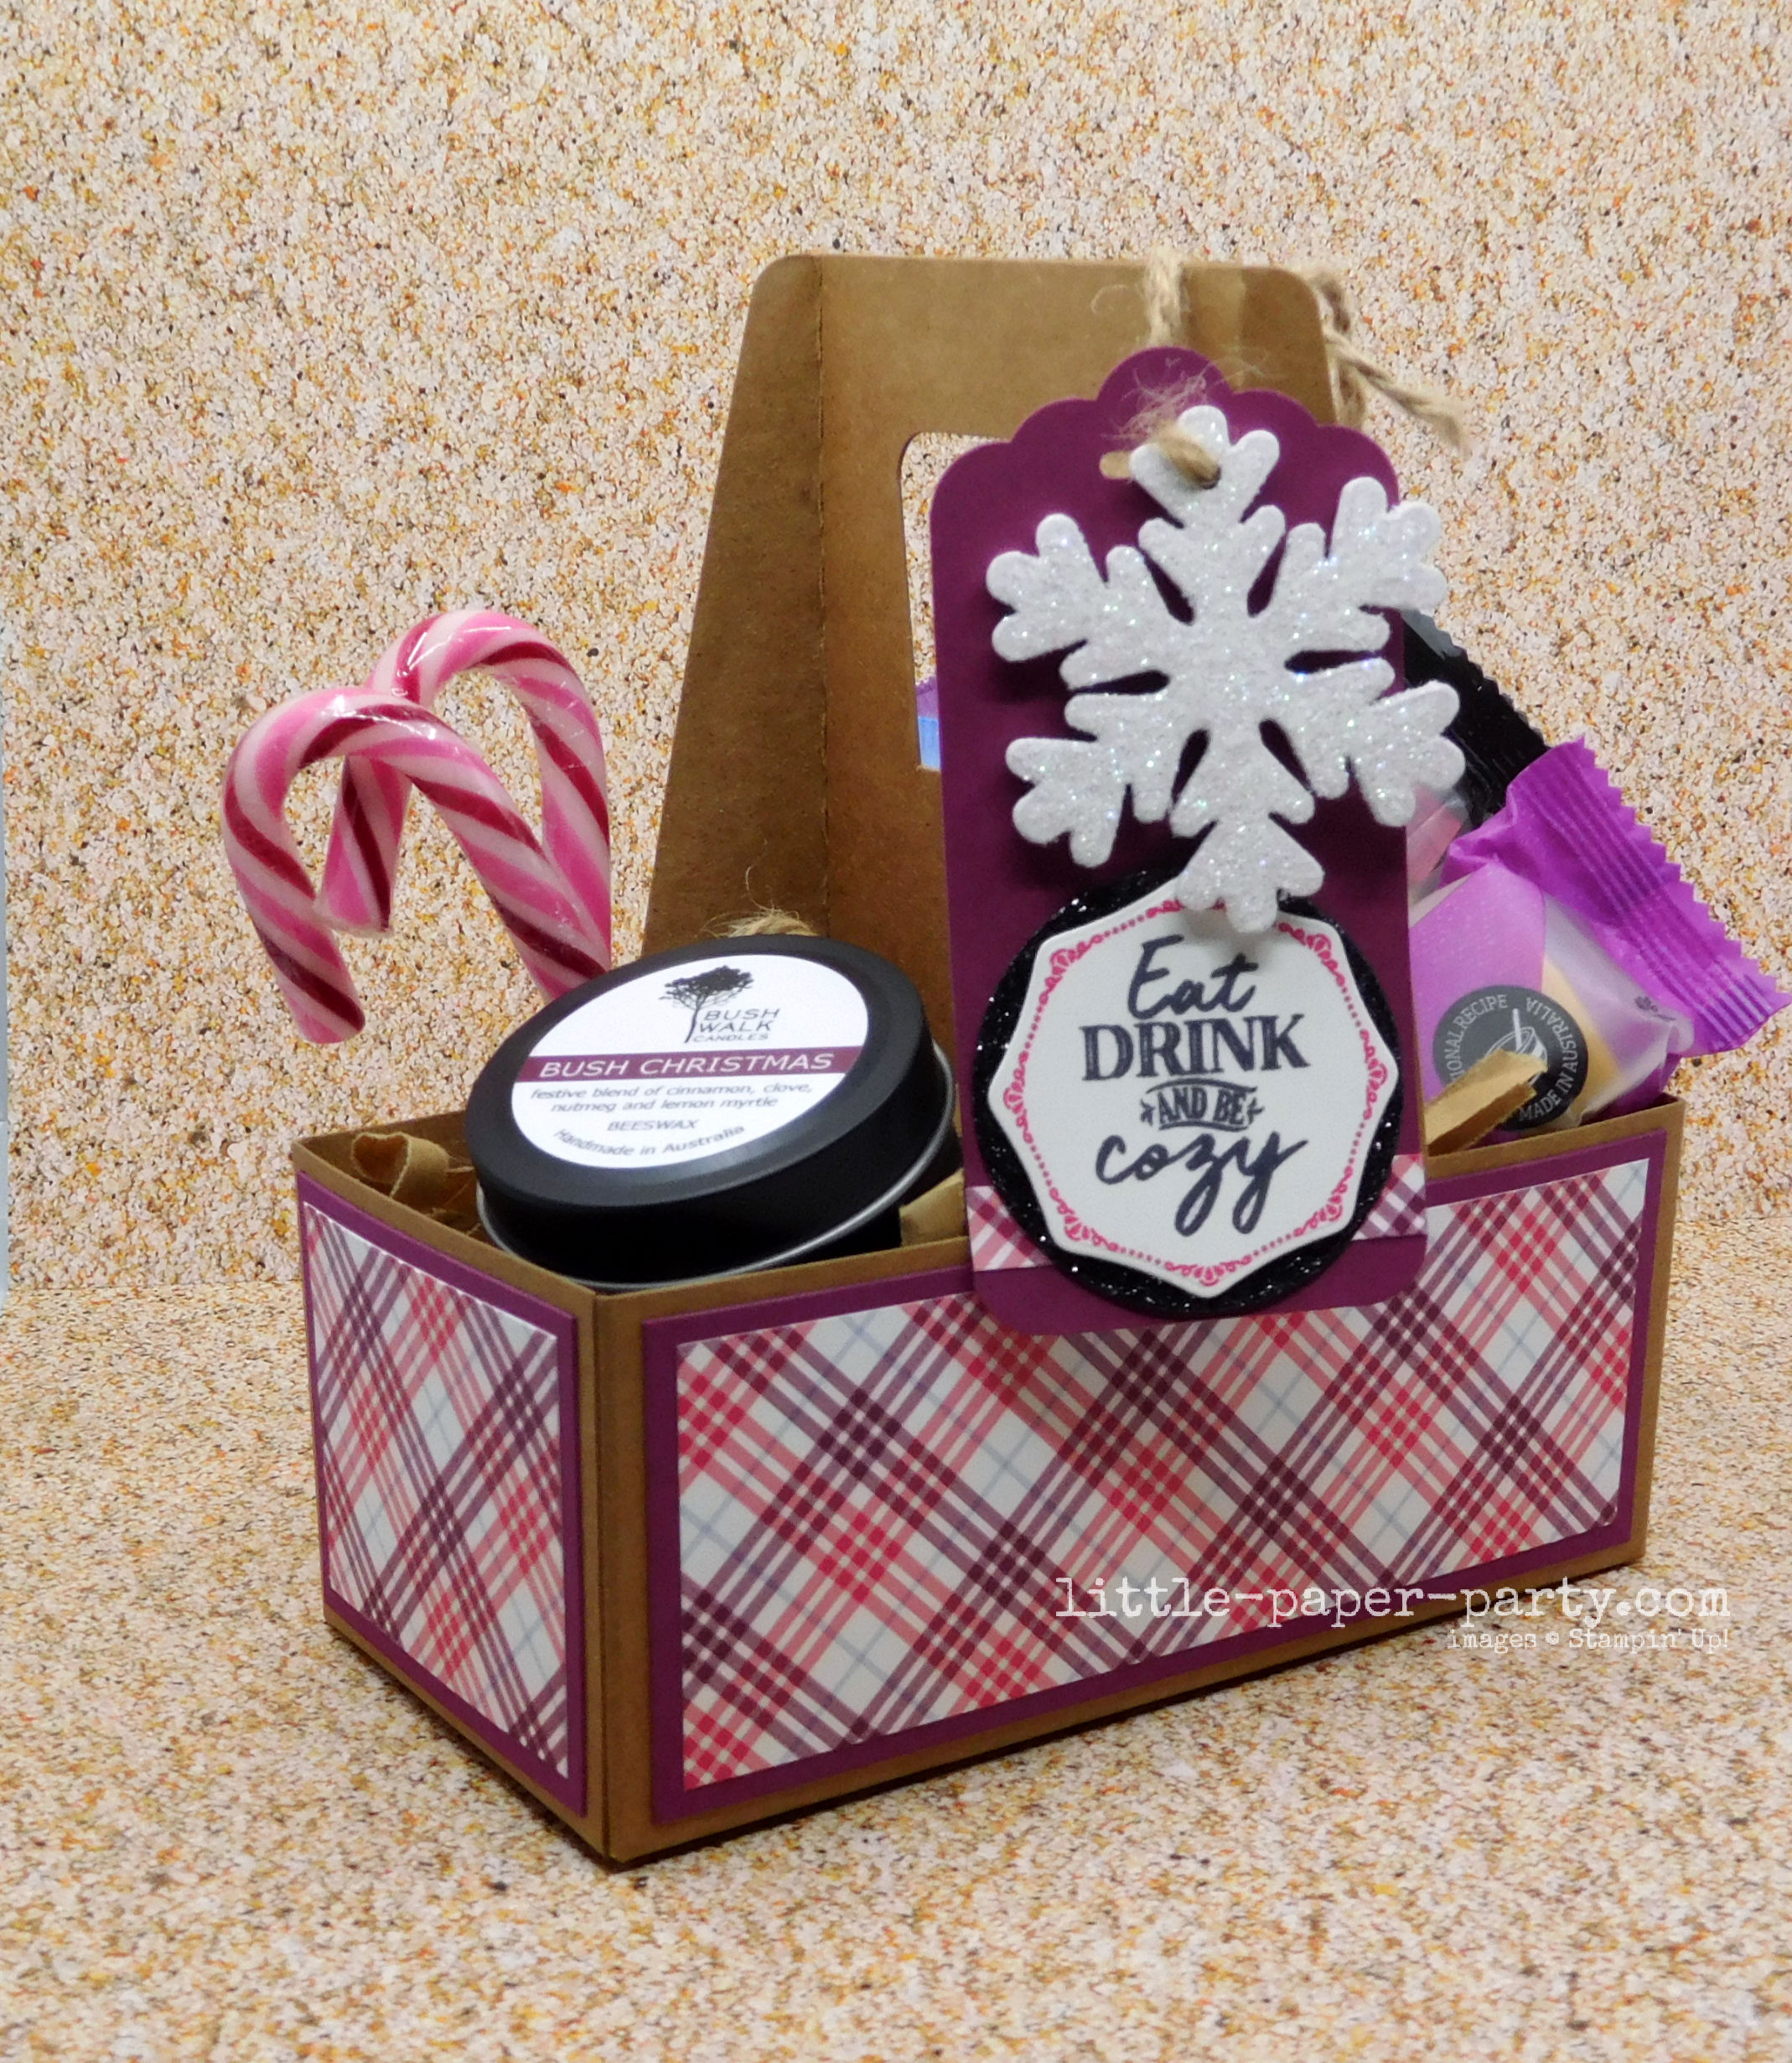 Little Paper Party, 12 Days of Christmas 2020 - Teacher Gifts, 4